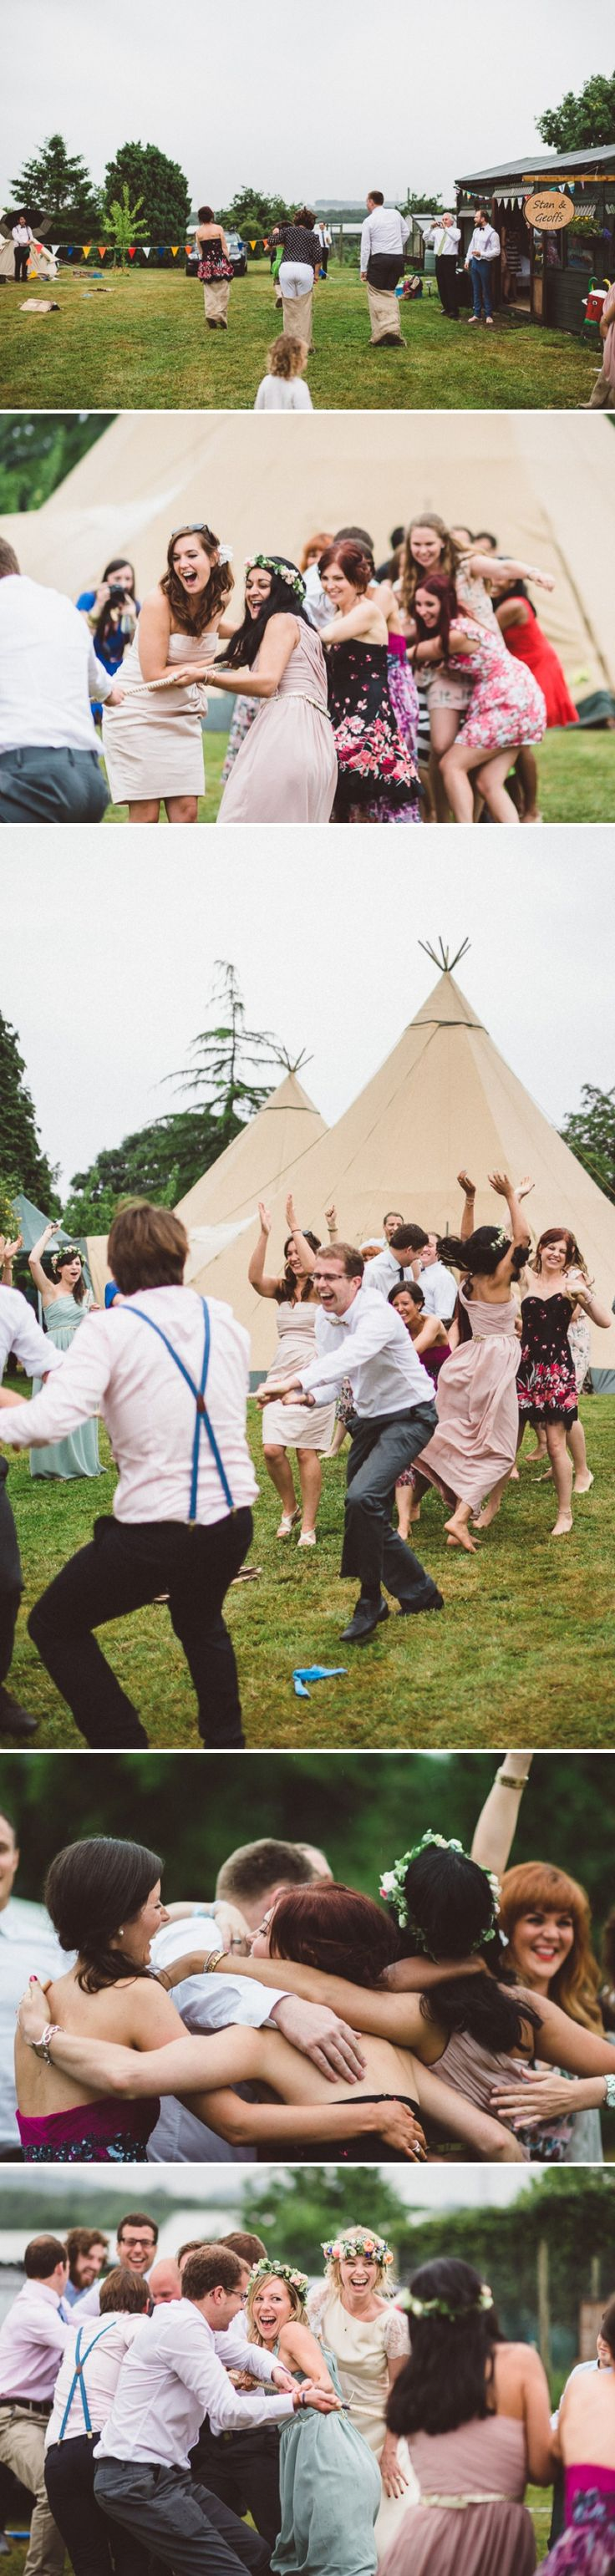 A Beautiful Bohemian Back Garden English Wedding With A Silk Charlie Brear Dress With Lace Cap Sleeves And Flower Crowns From Rhys Parker Ph...